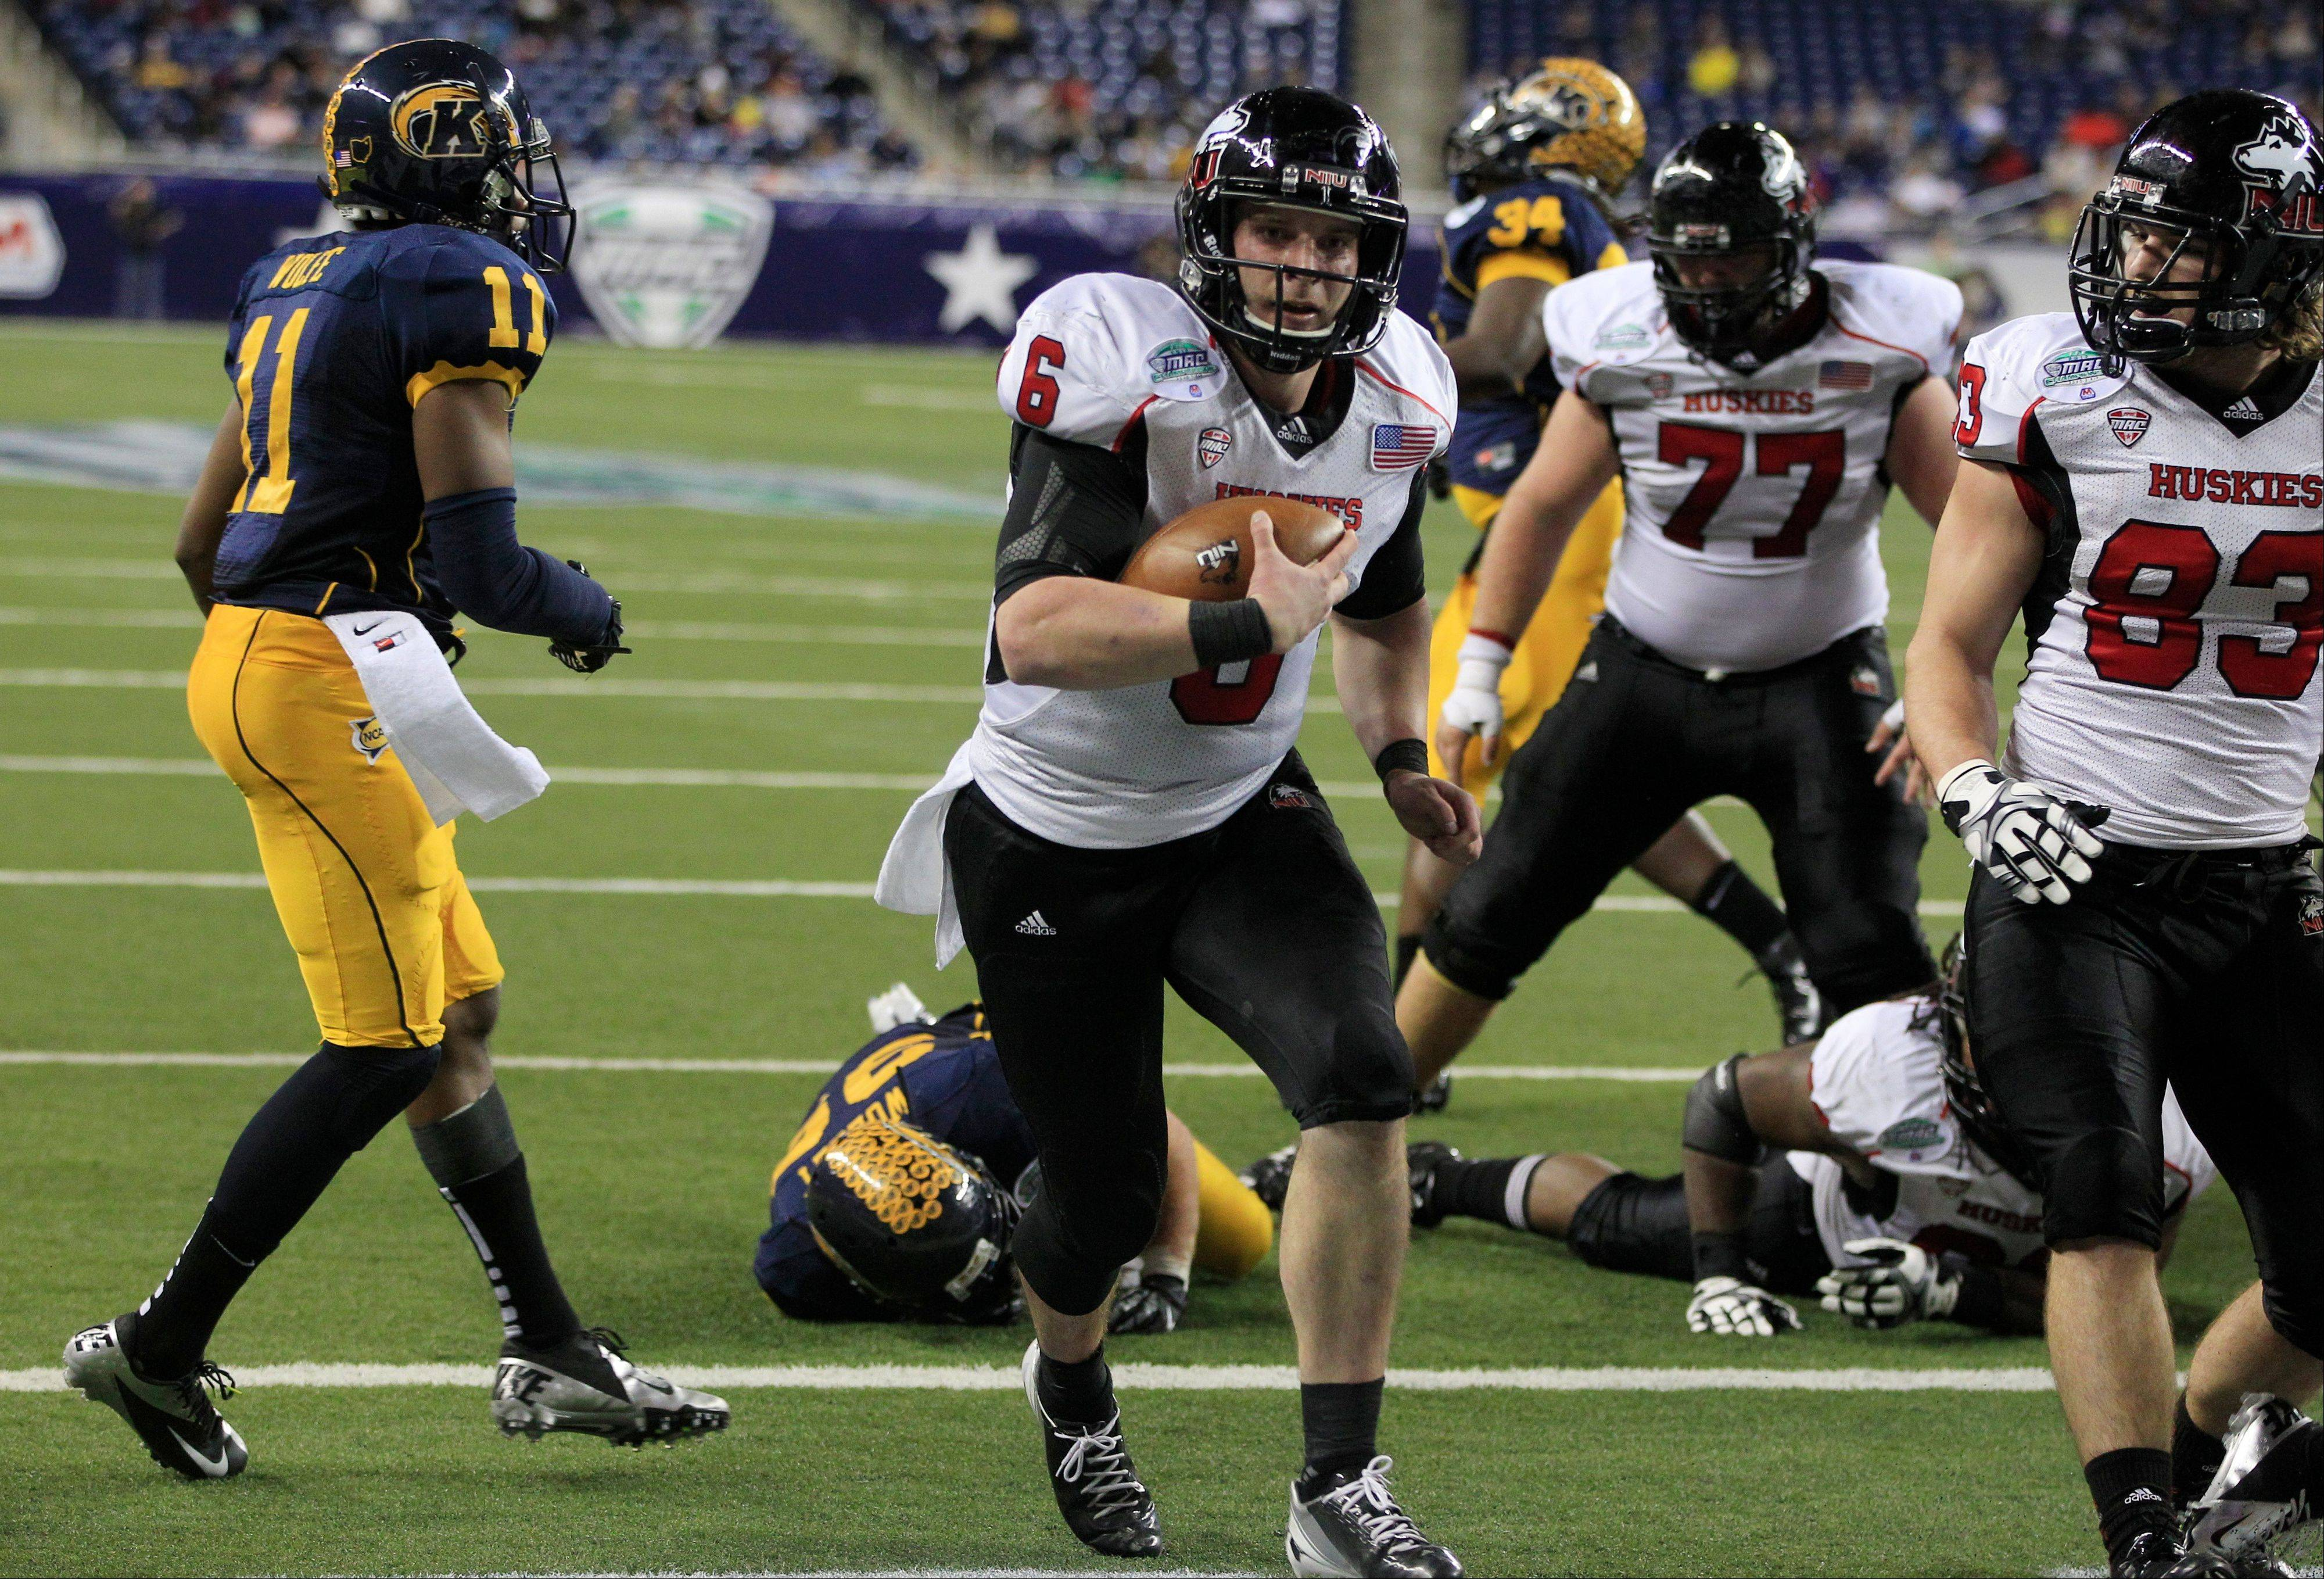 Jordan Lynch set the FBS rushing record for quarterbacks this season. He has 1,770 yards on the ground.